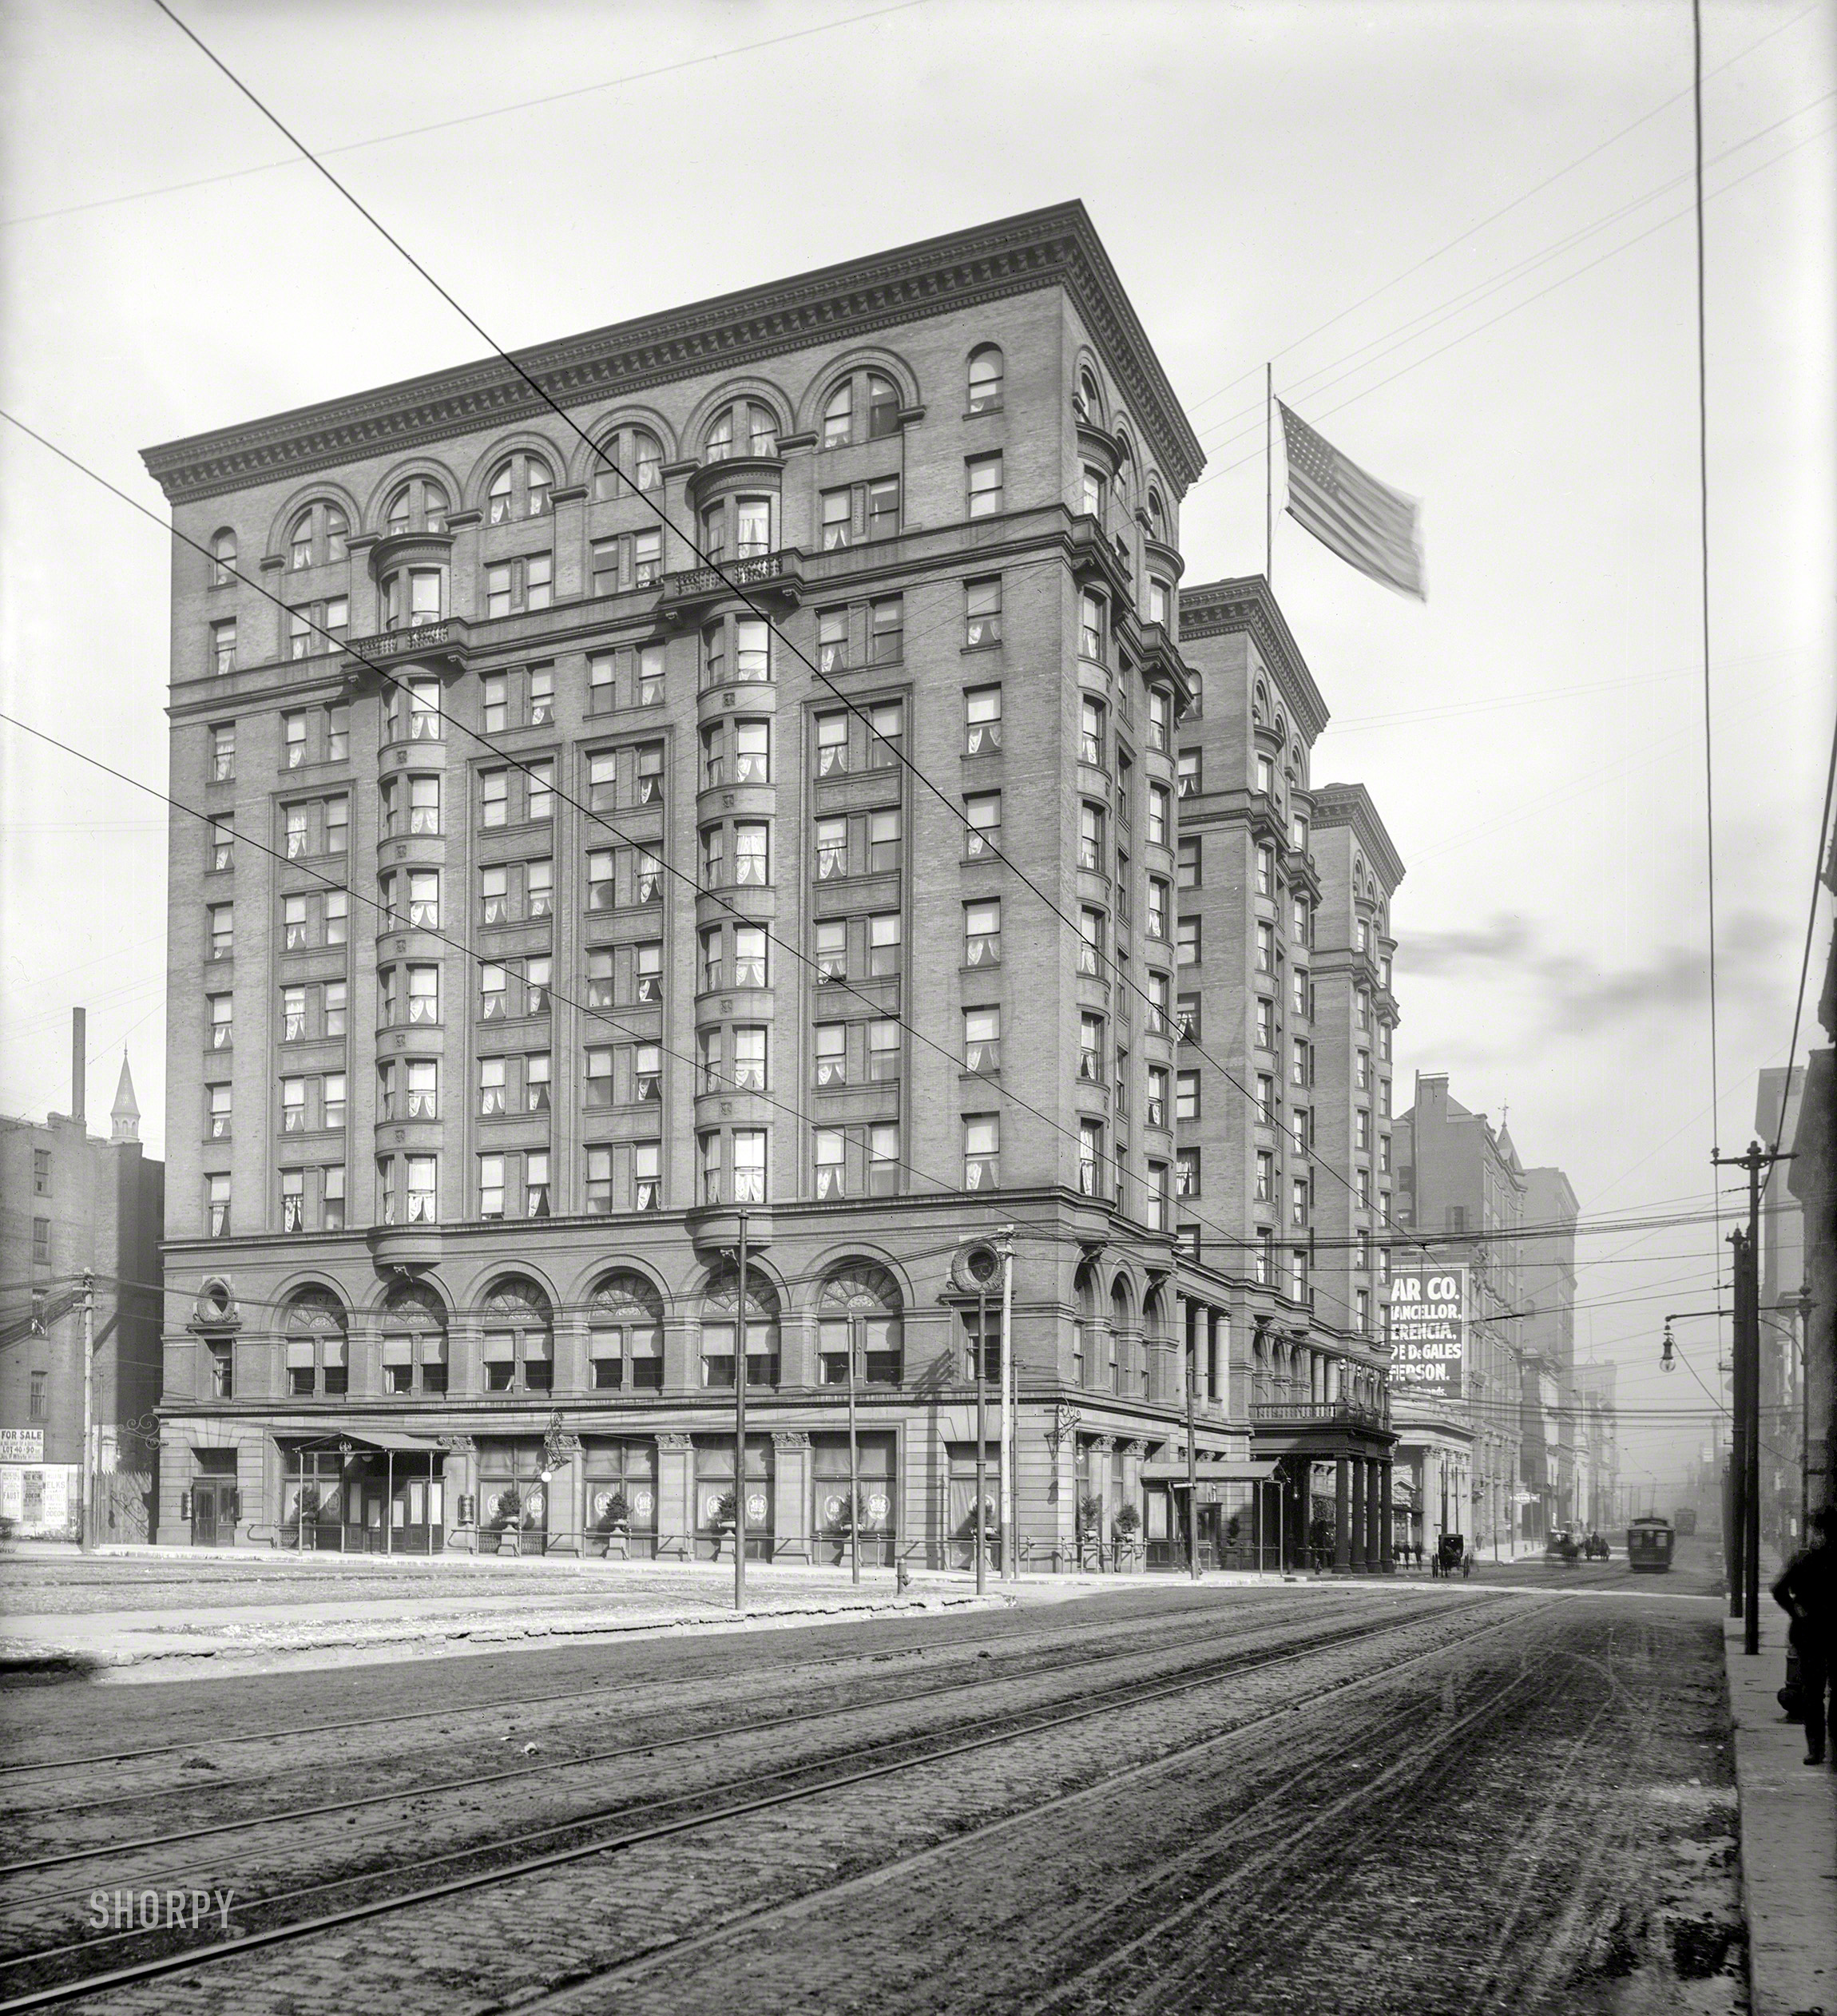 Shorpy Historic Picture Archive Planters House 1901 High Resolution Photo